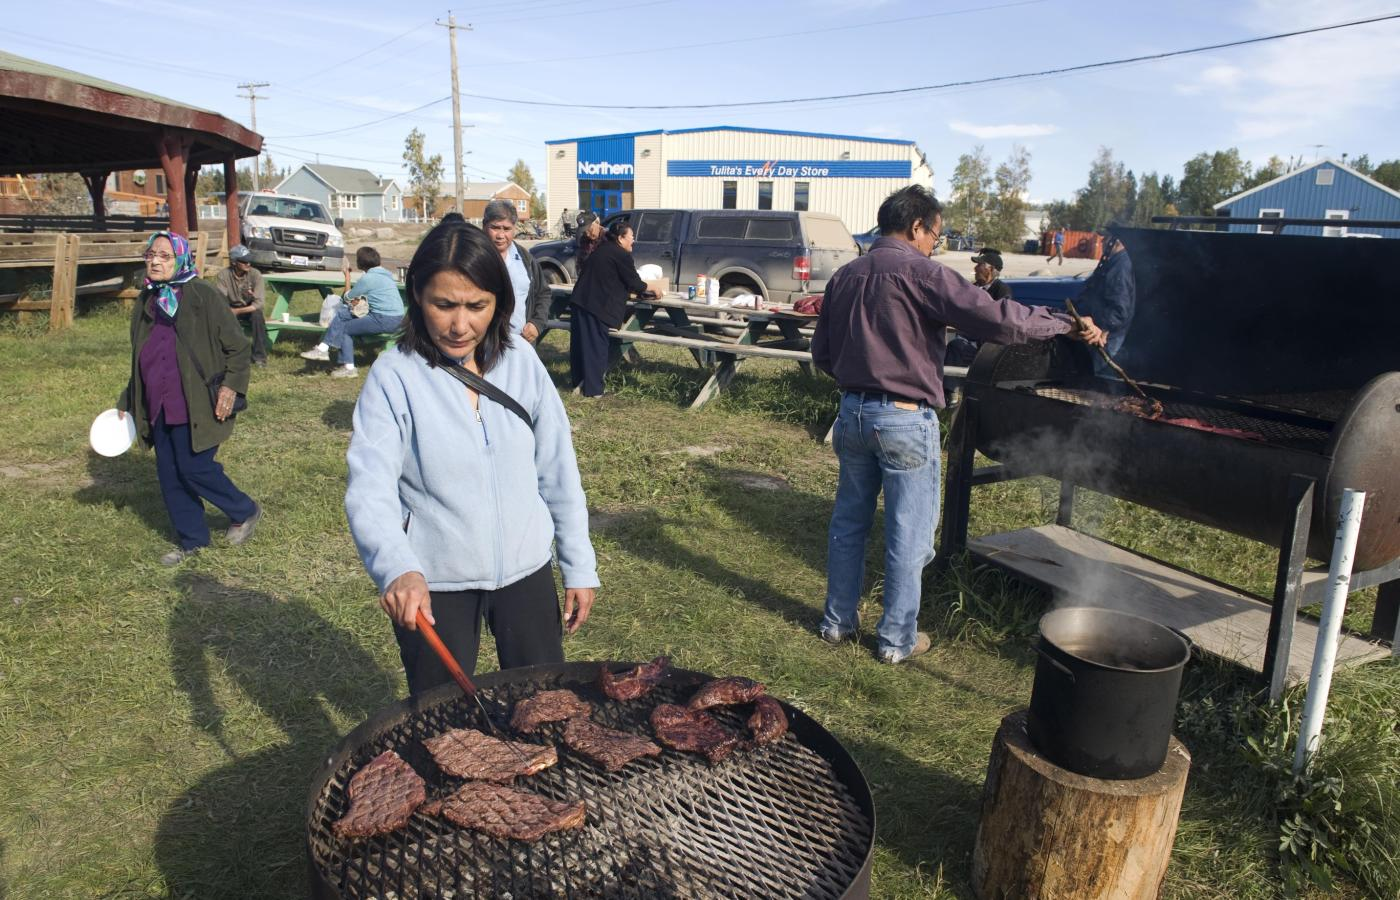 An Indigenous community celebration in the NWT